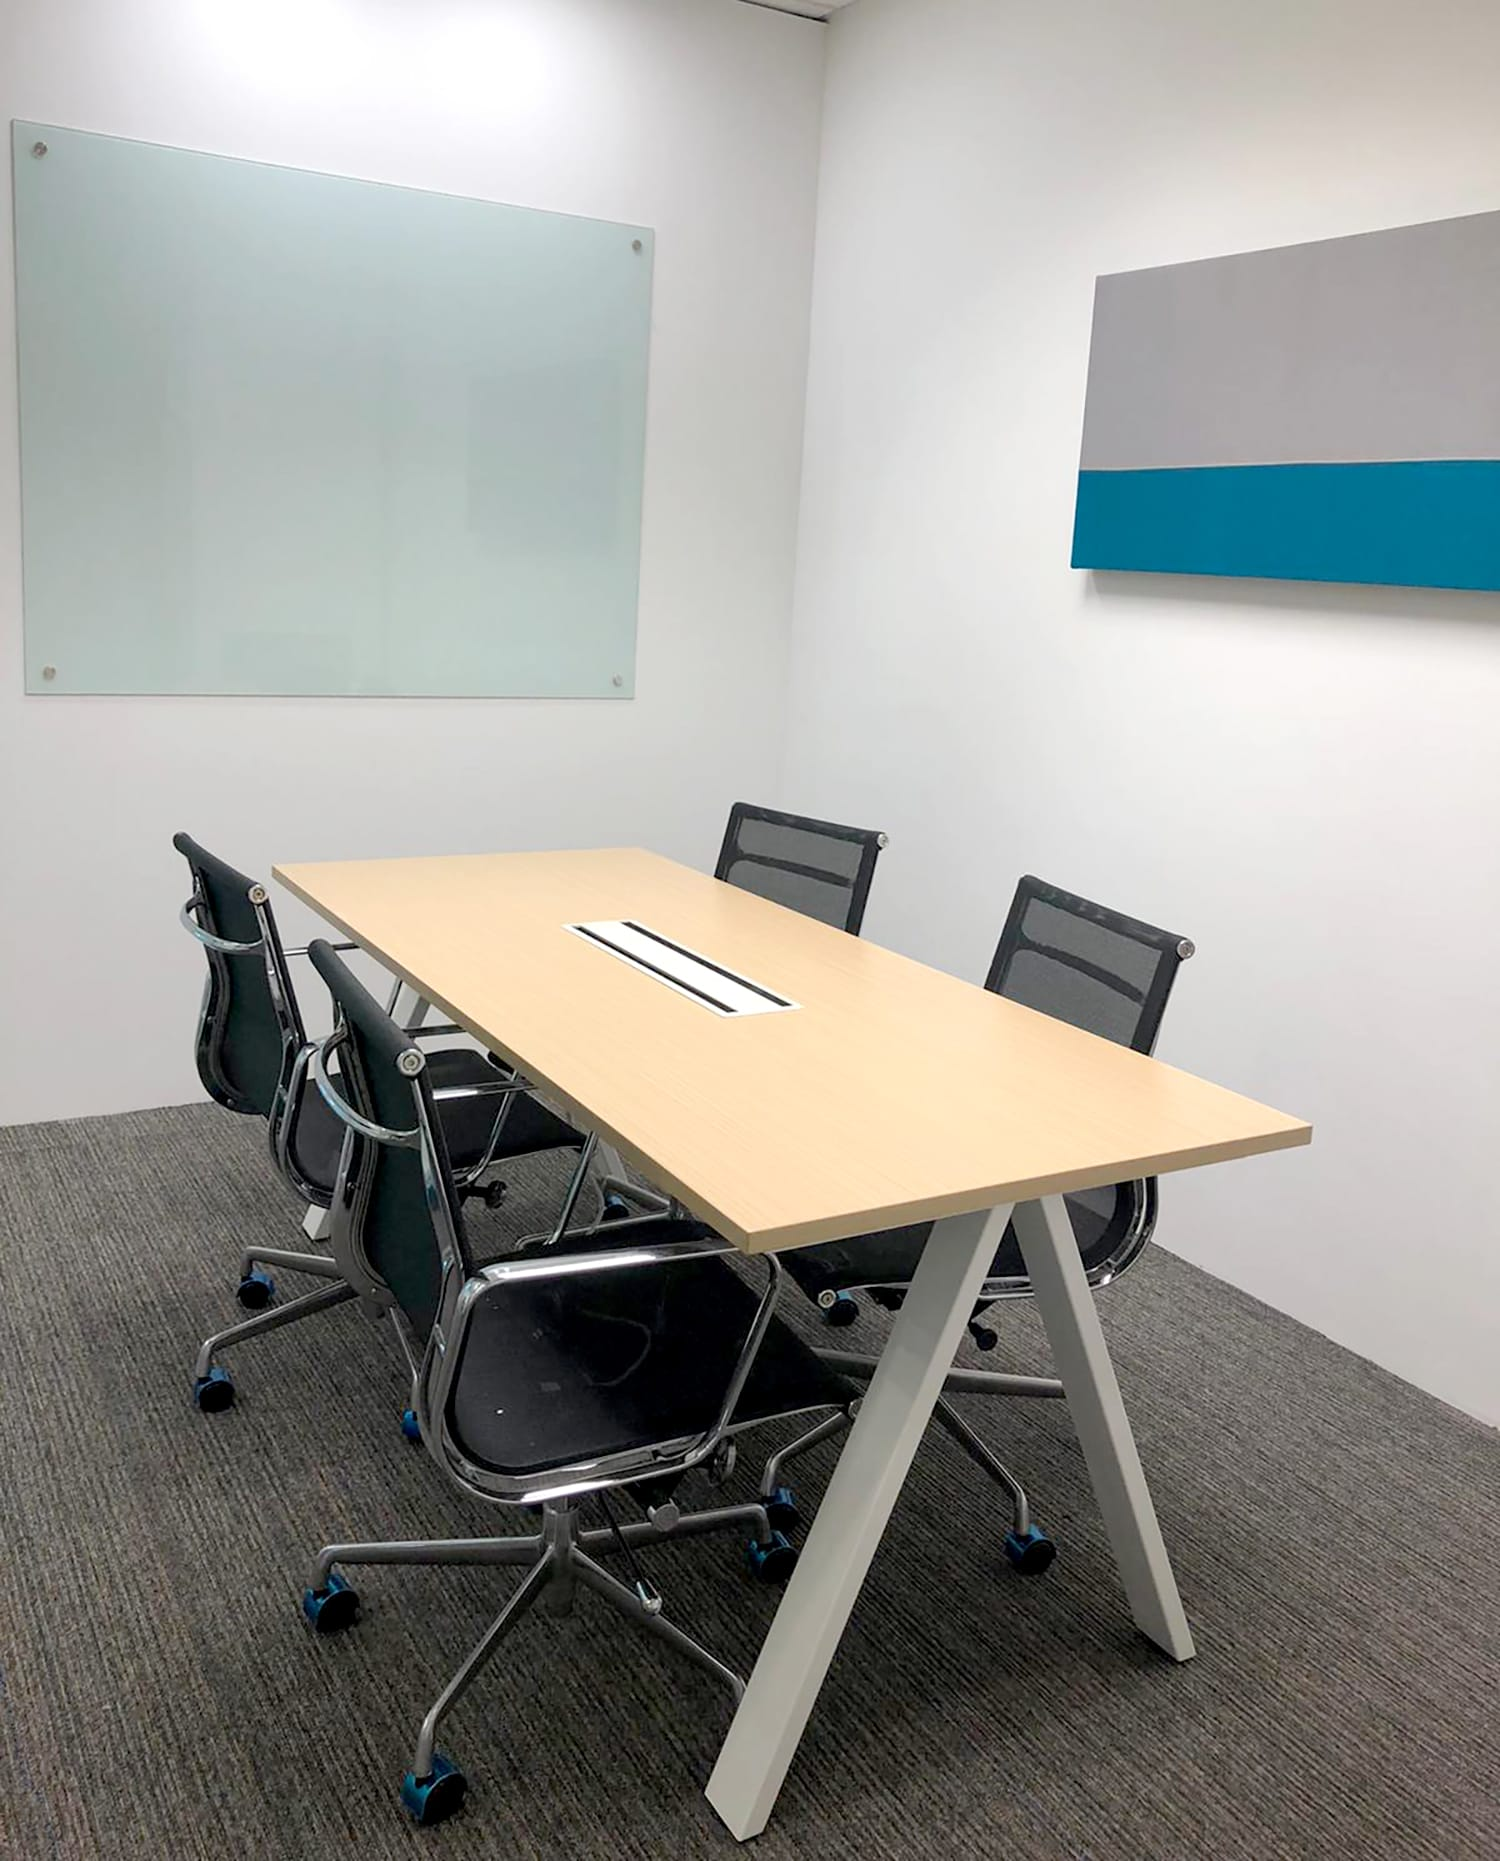 ASK Advisory Services - Paya Lebar | Product Seen: [Hush Ceiling Hanging Acoustic Partition, Apex Conference Table & Eam Mesh Midback Office Chair]